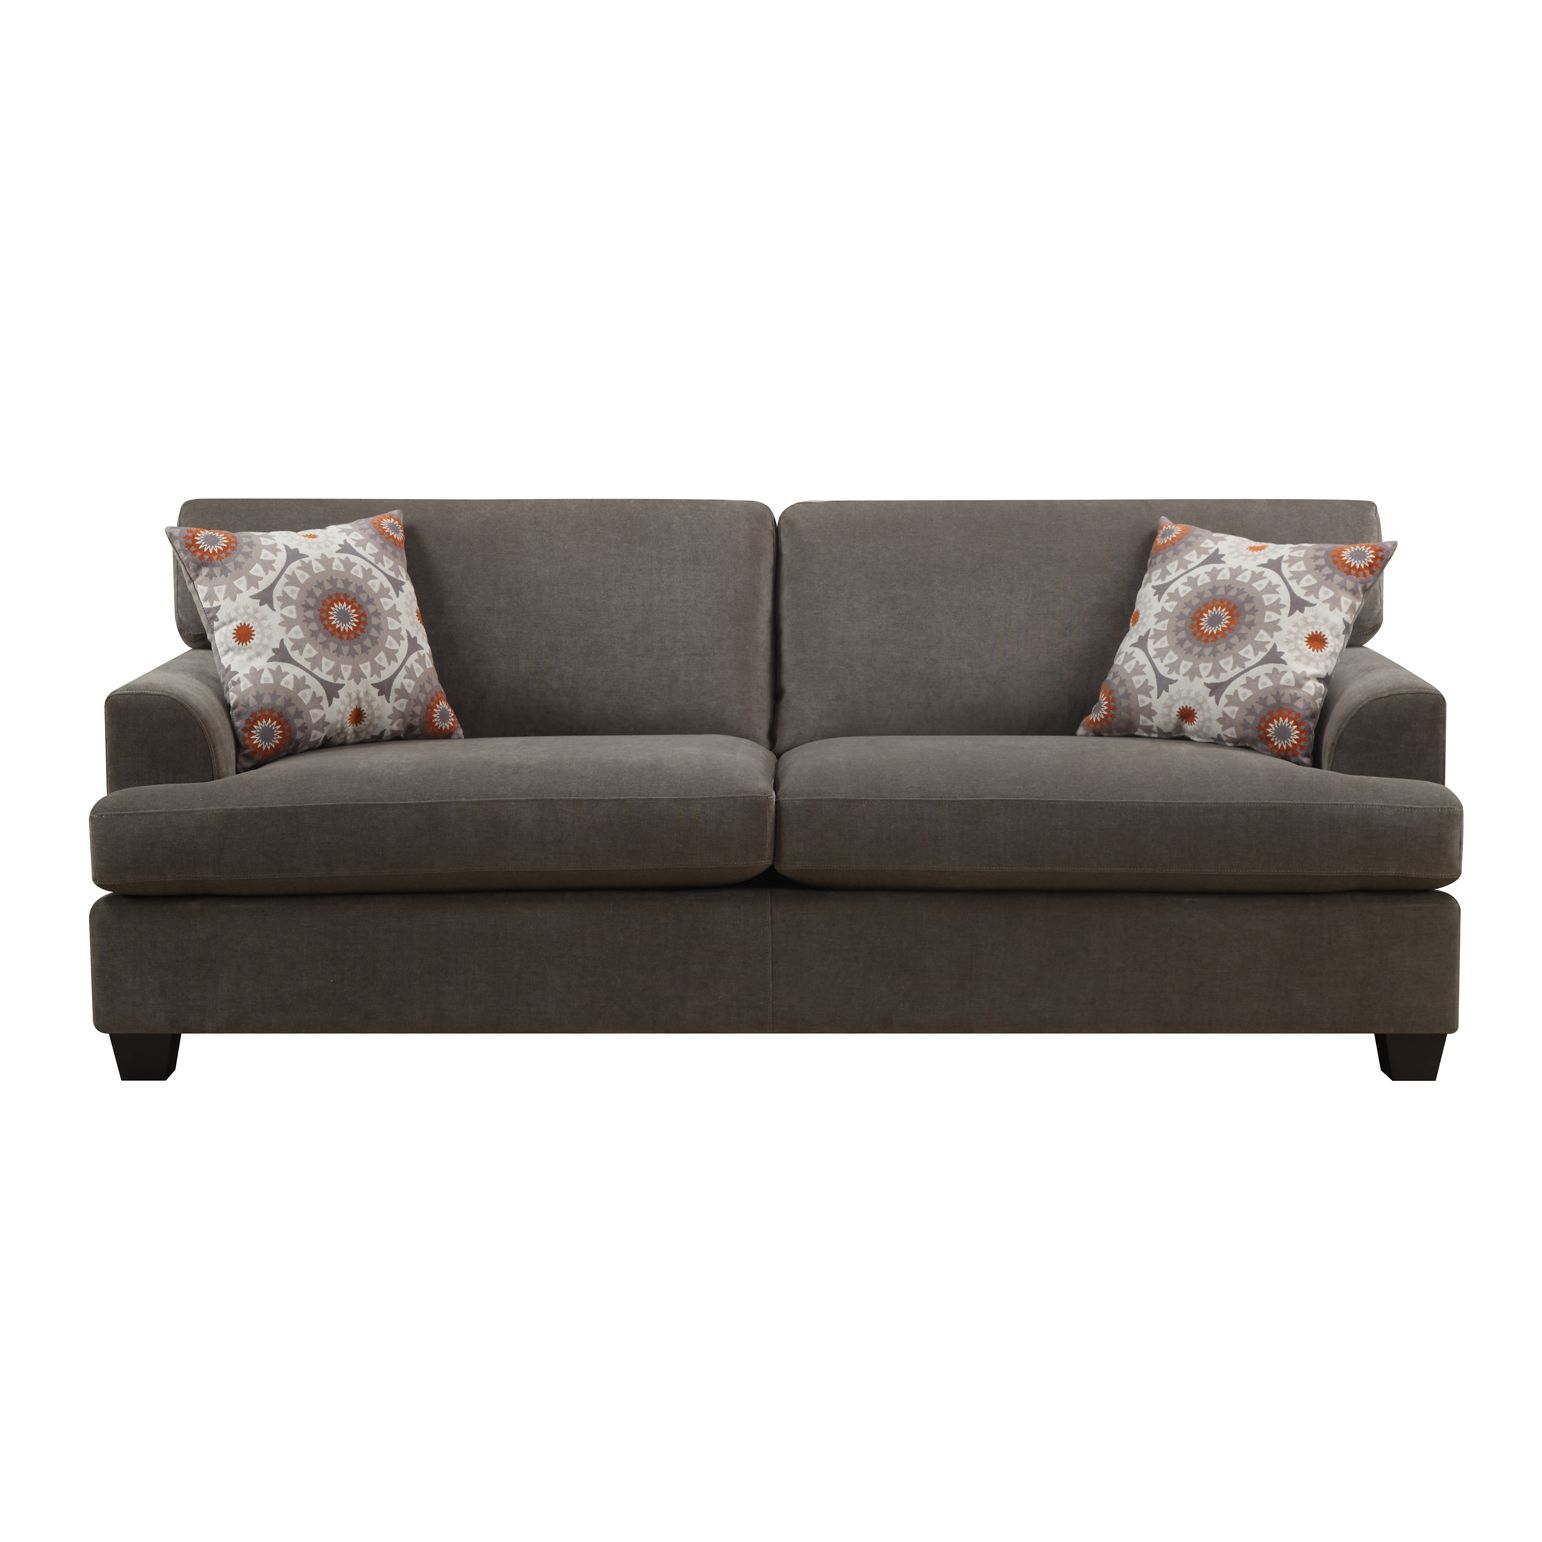 Ashley Yvette Steel Sofa I love the color and the design on the